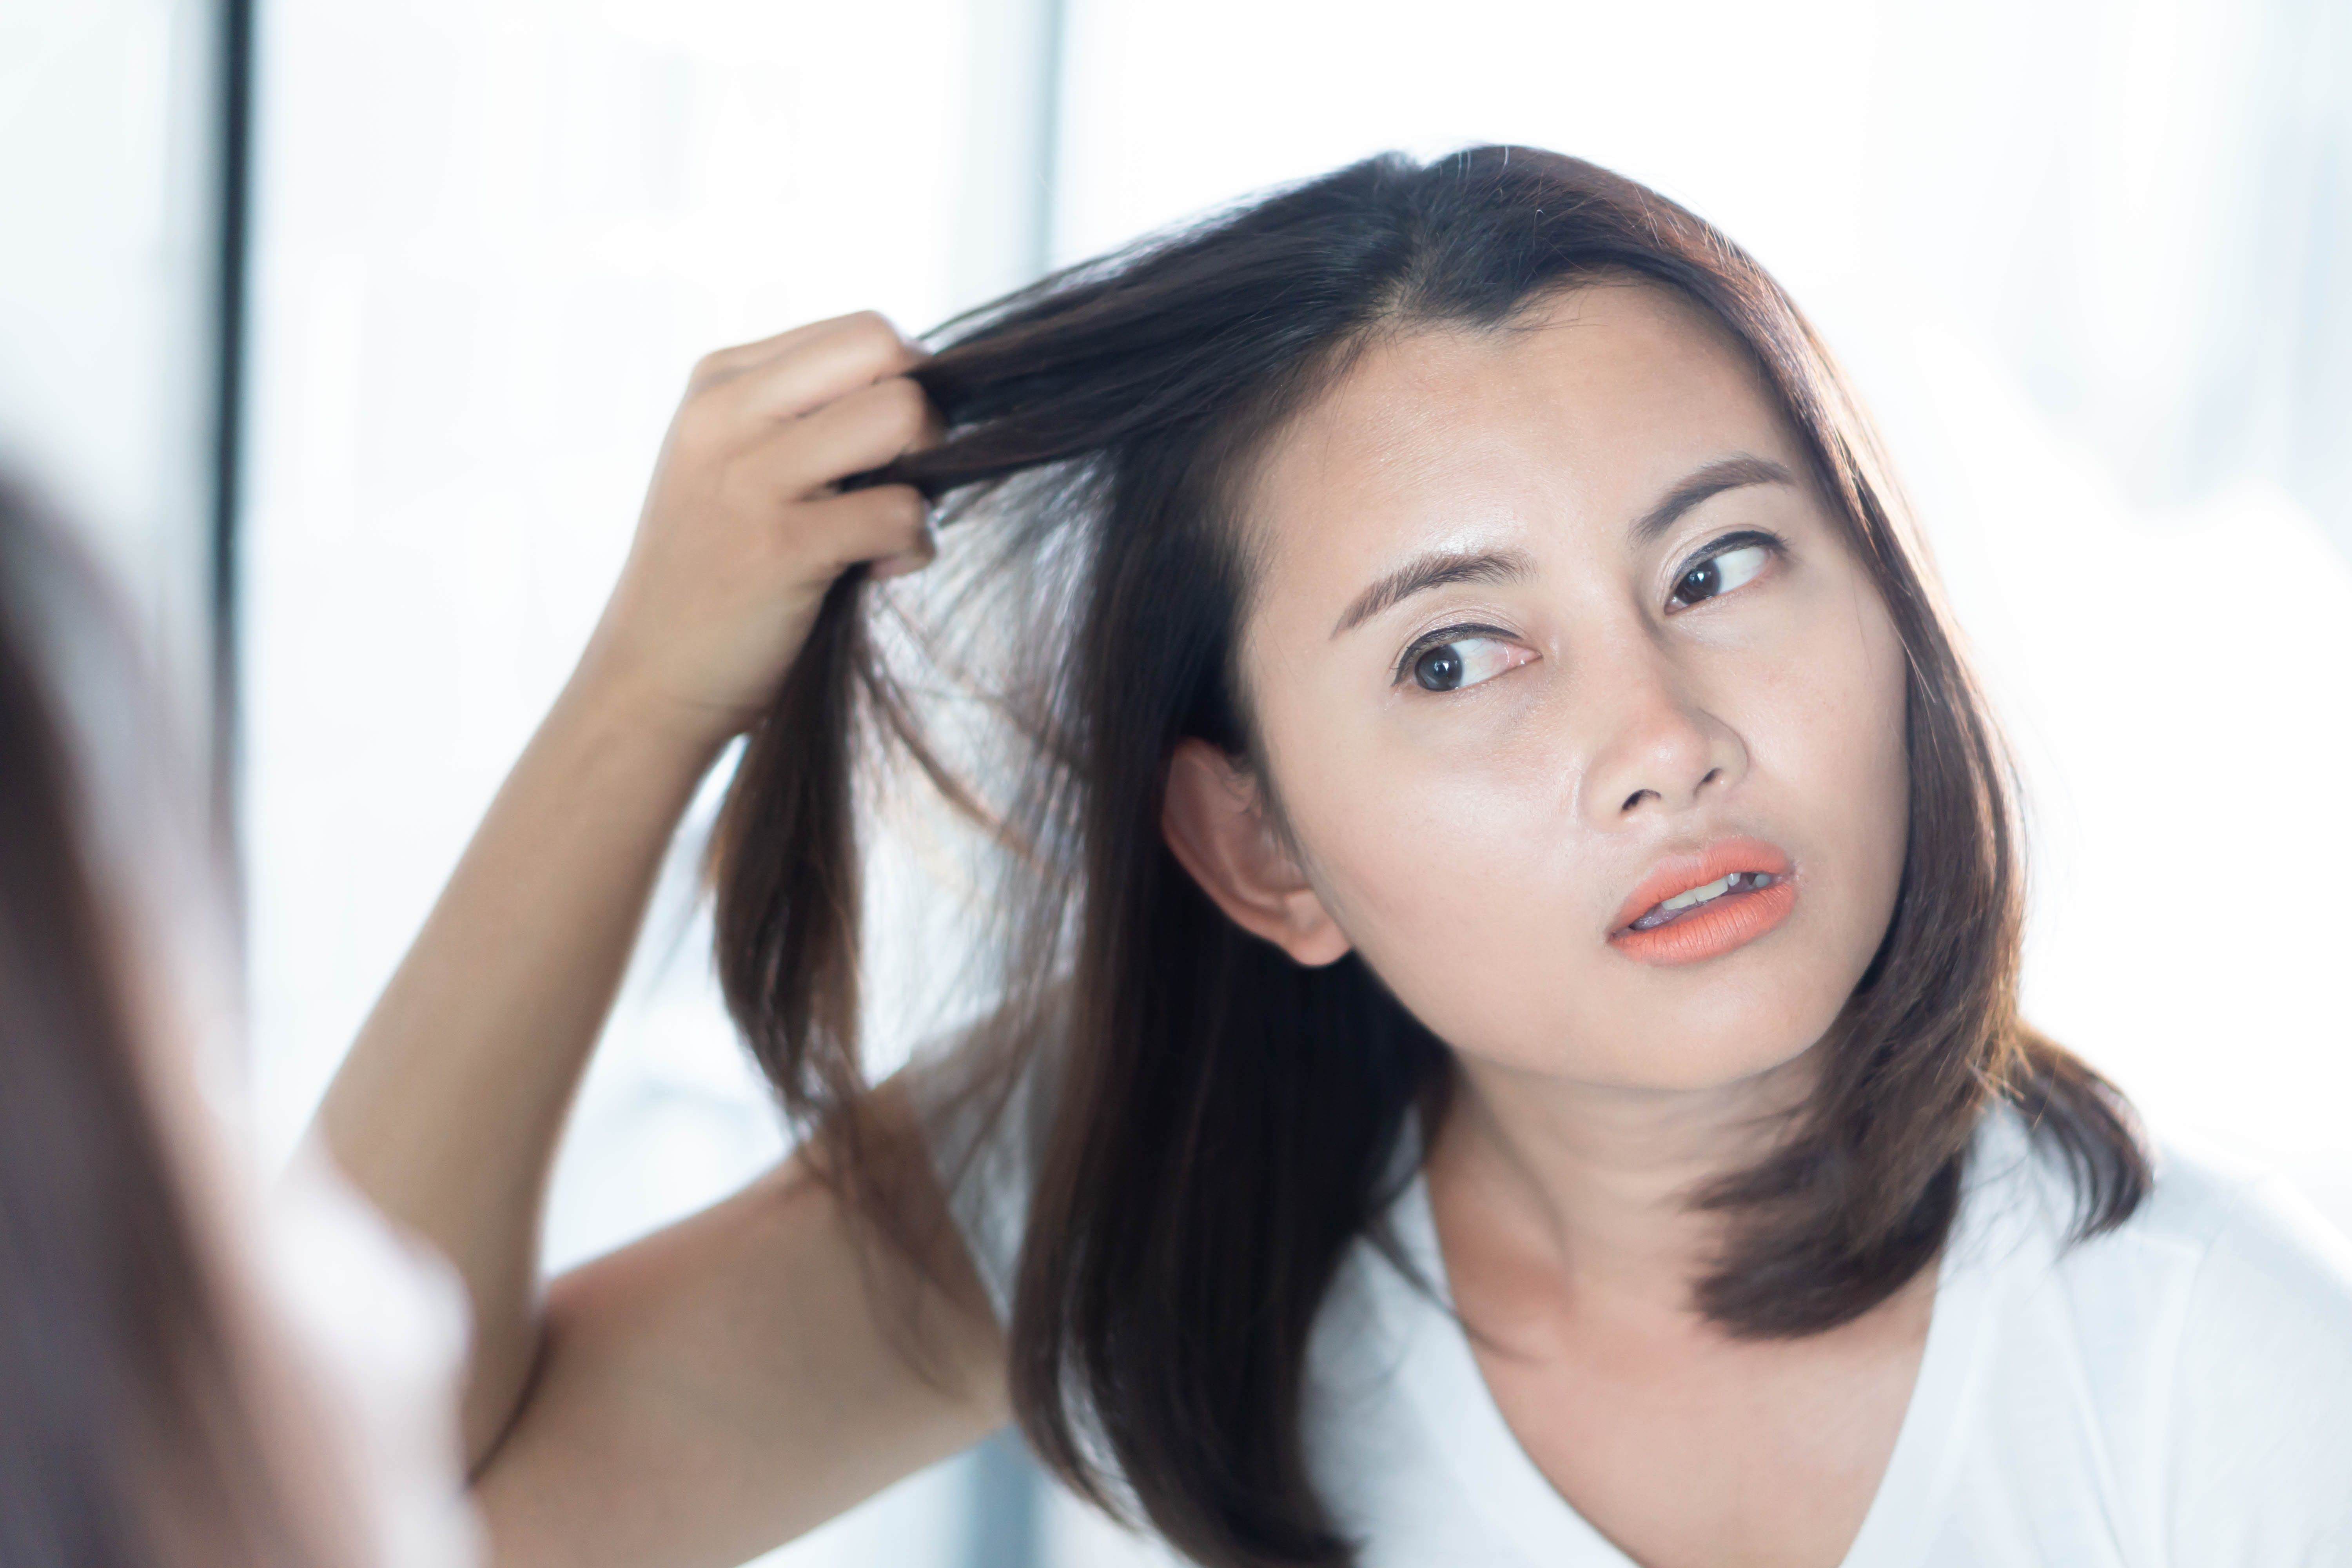 Combing hair guide for thin hair